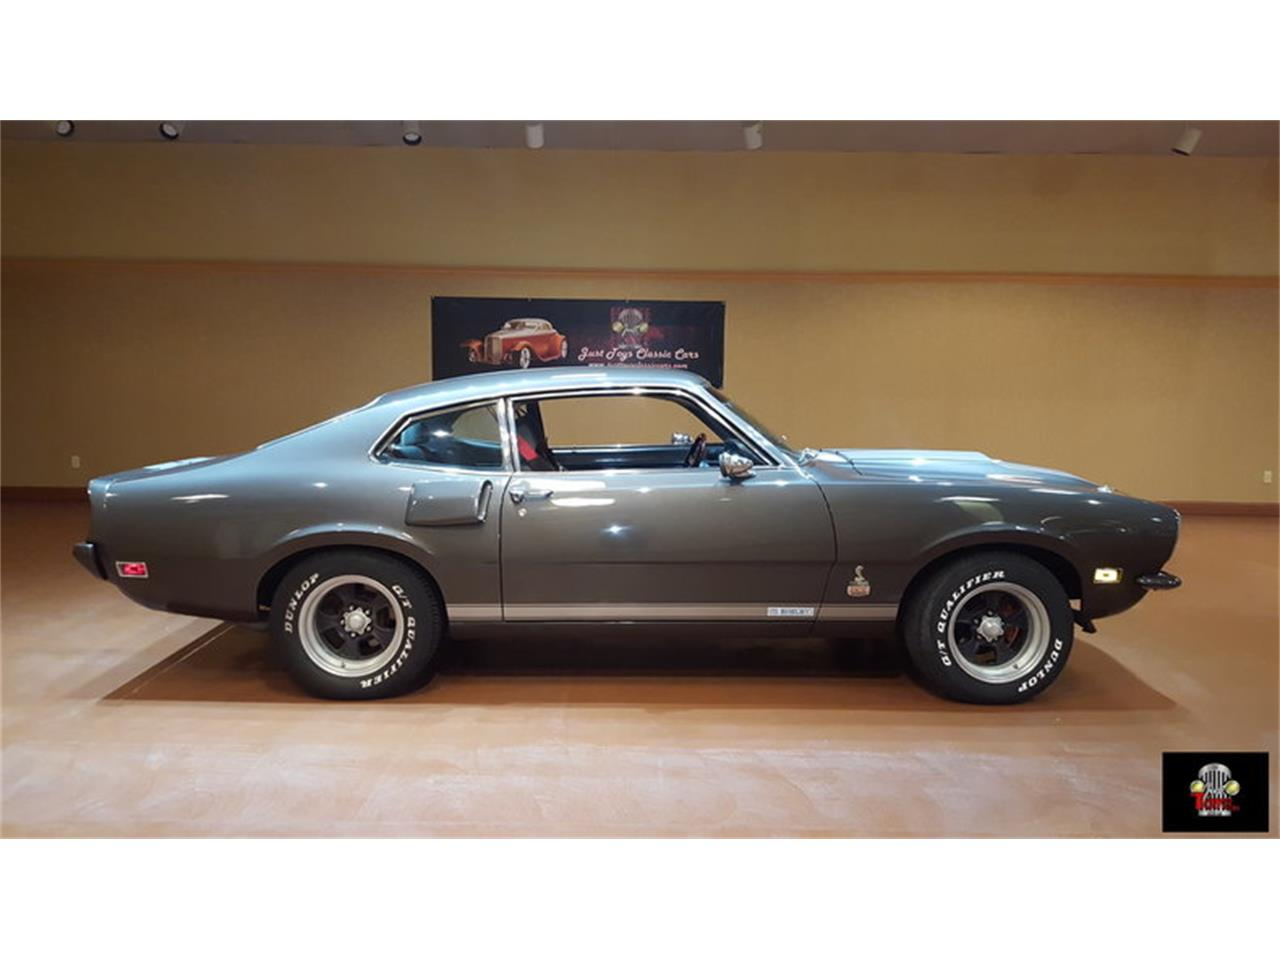 1974 Ford Maverick 1973 Ford Maverick Shelby Tribute For